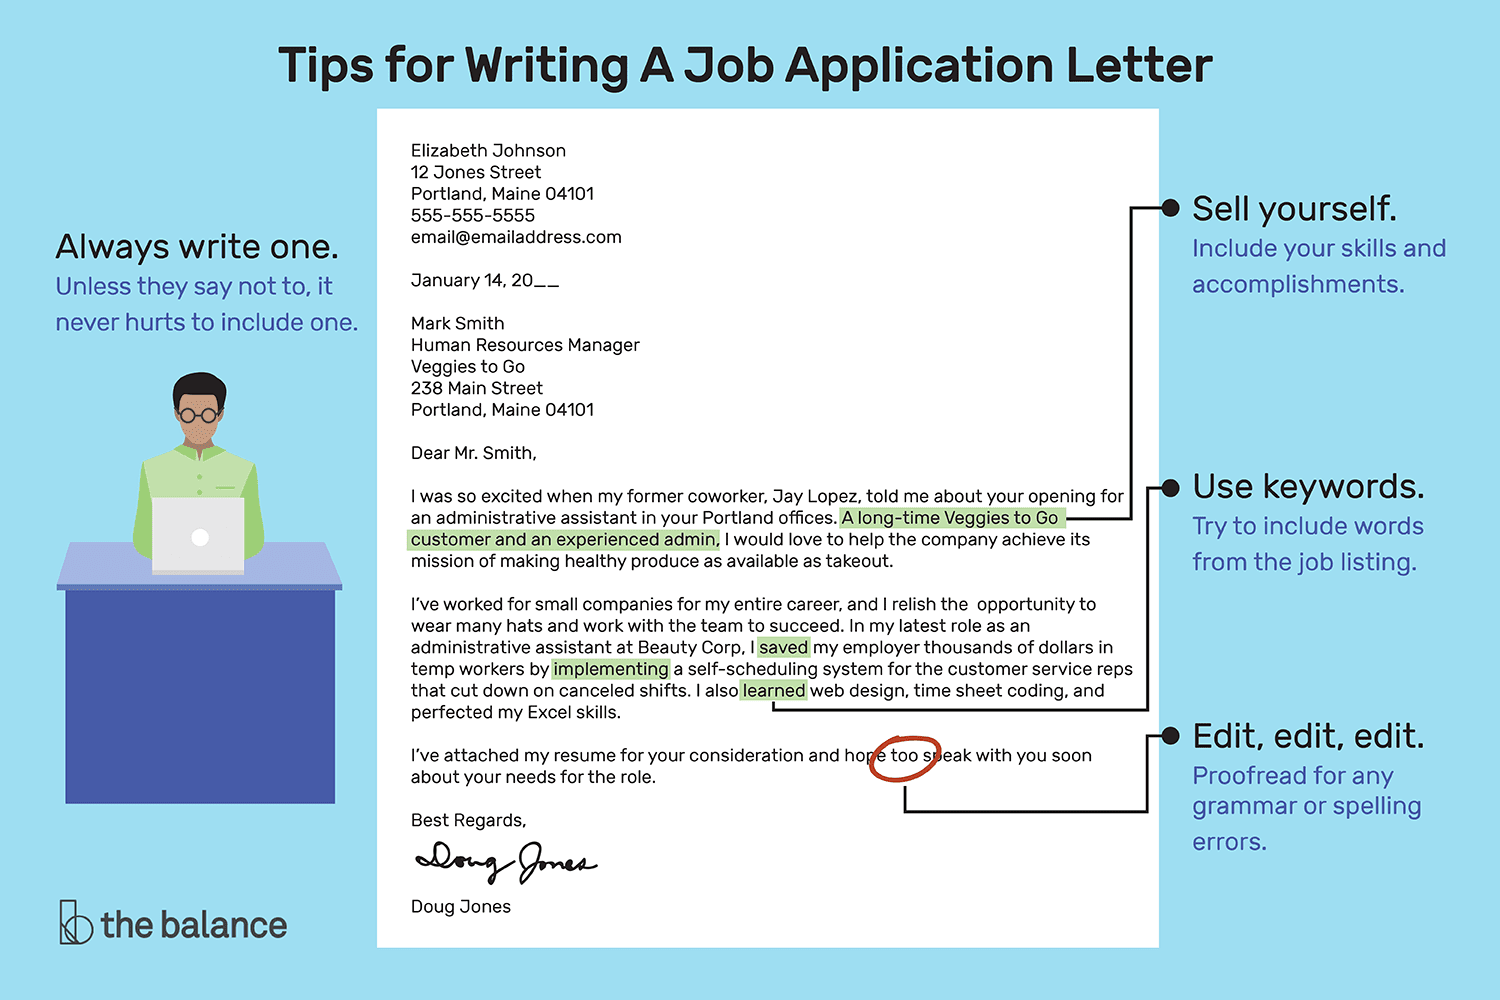 How To Write A Job Application Letter (With Samples